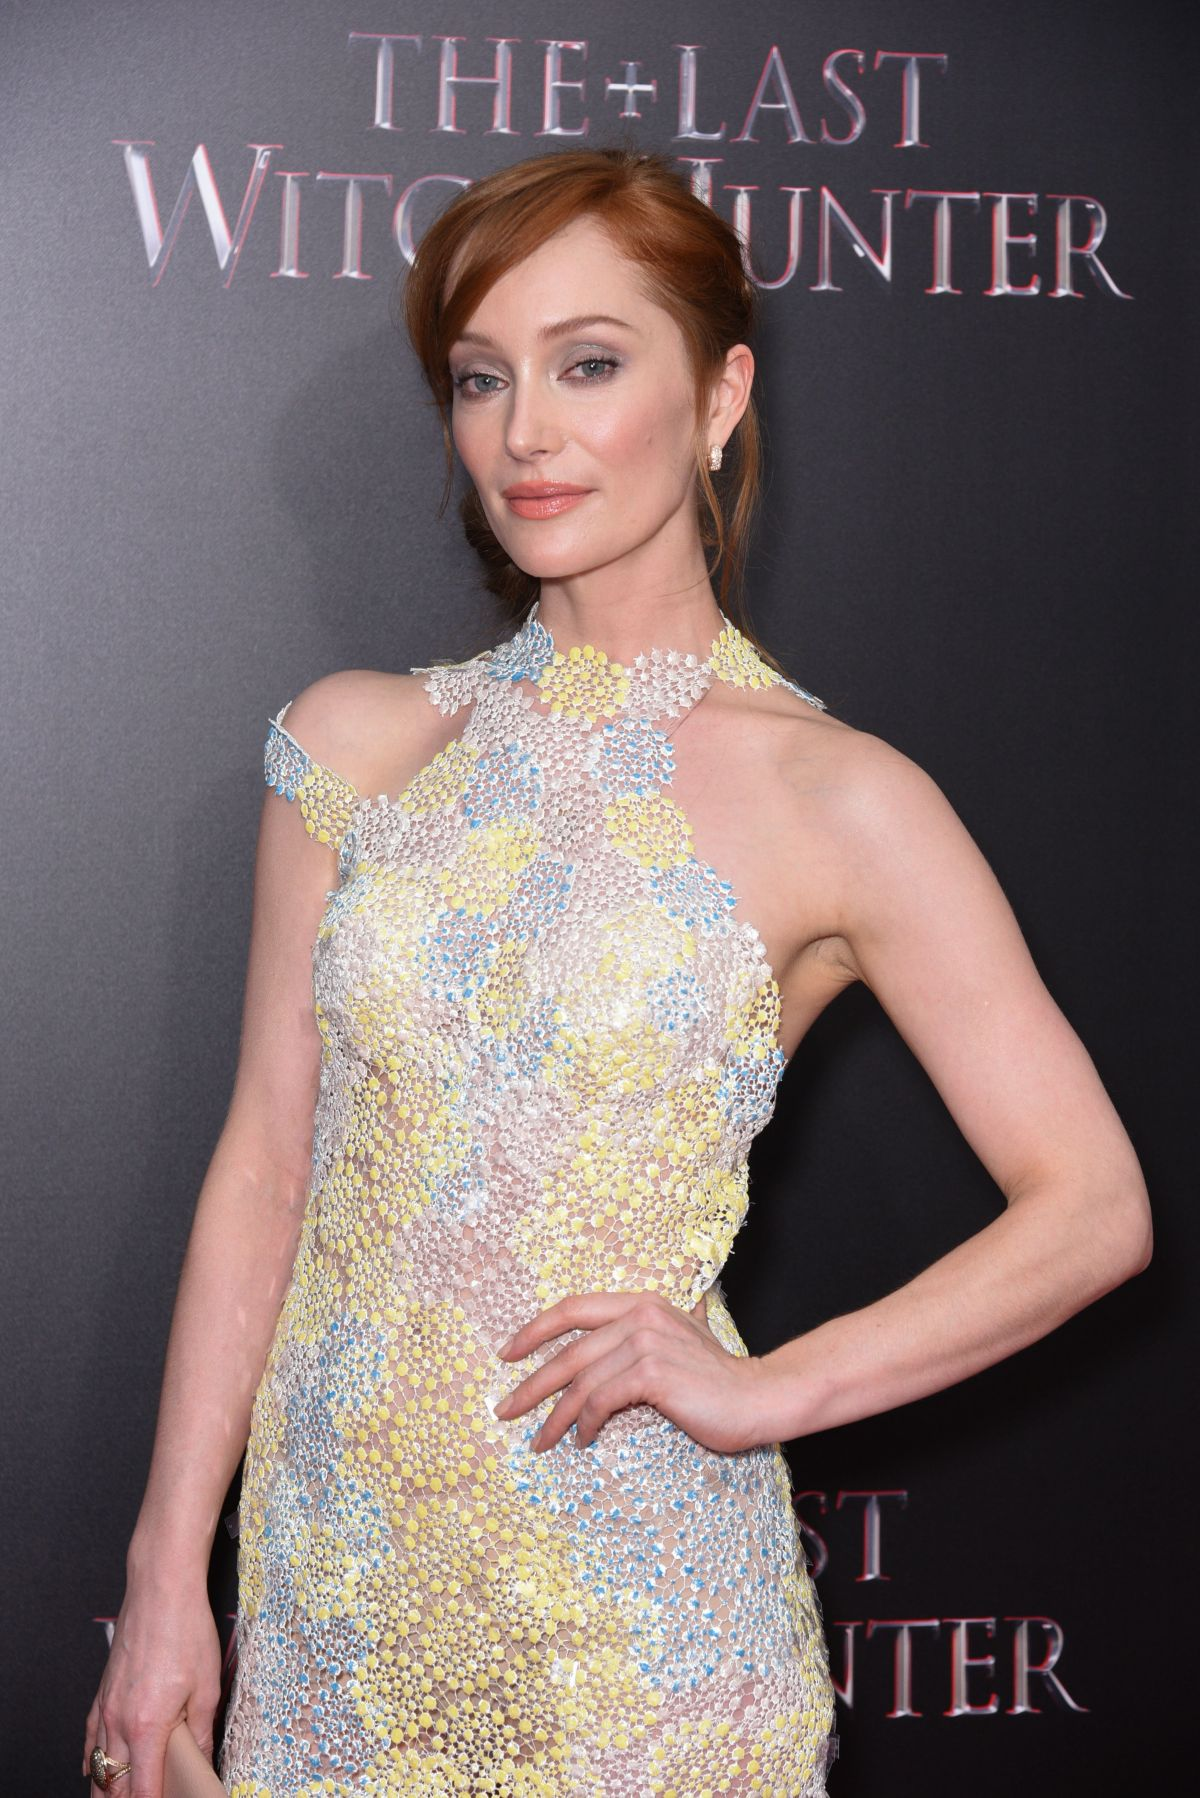 LOTTE VERBEEK at The Last Witch Hunter Premiere in New York 10/13/2015